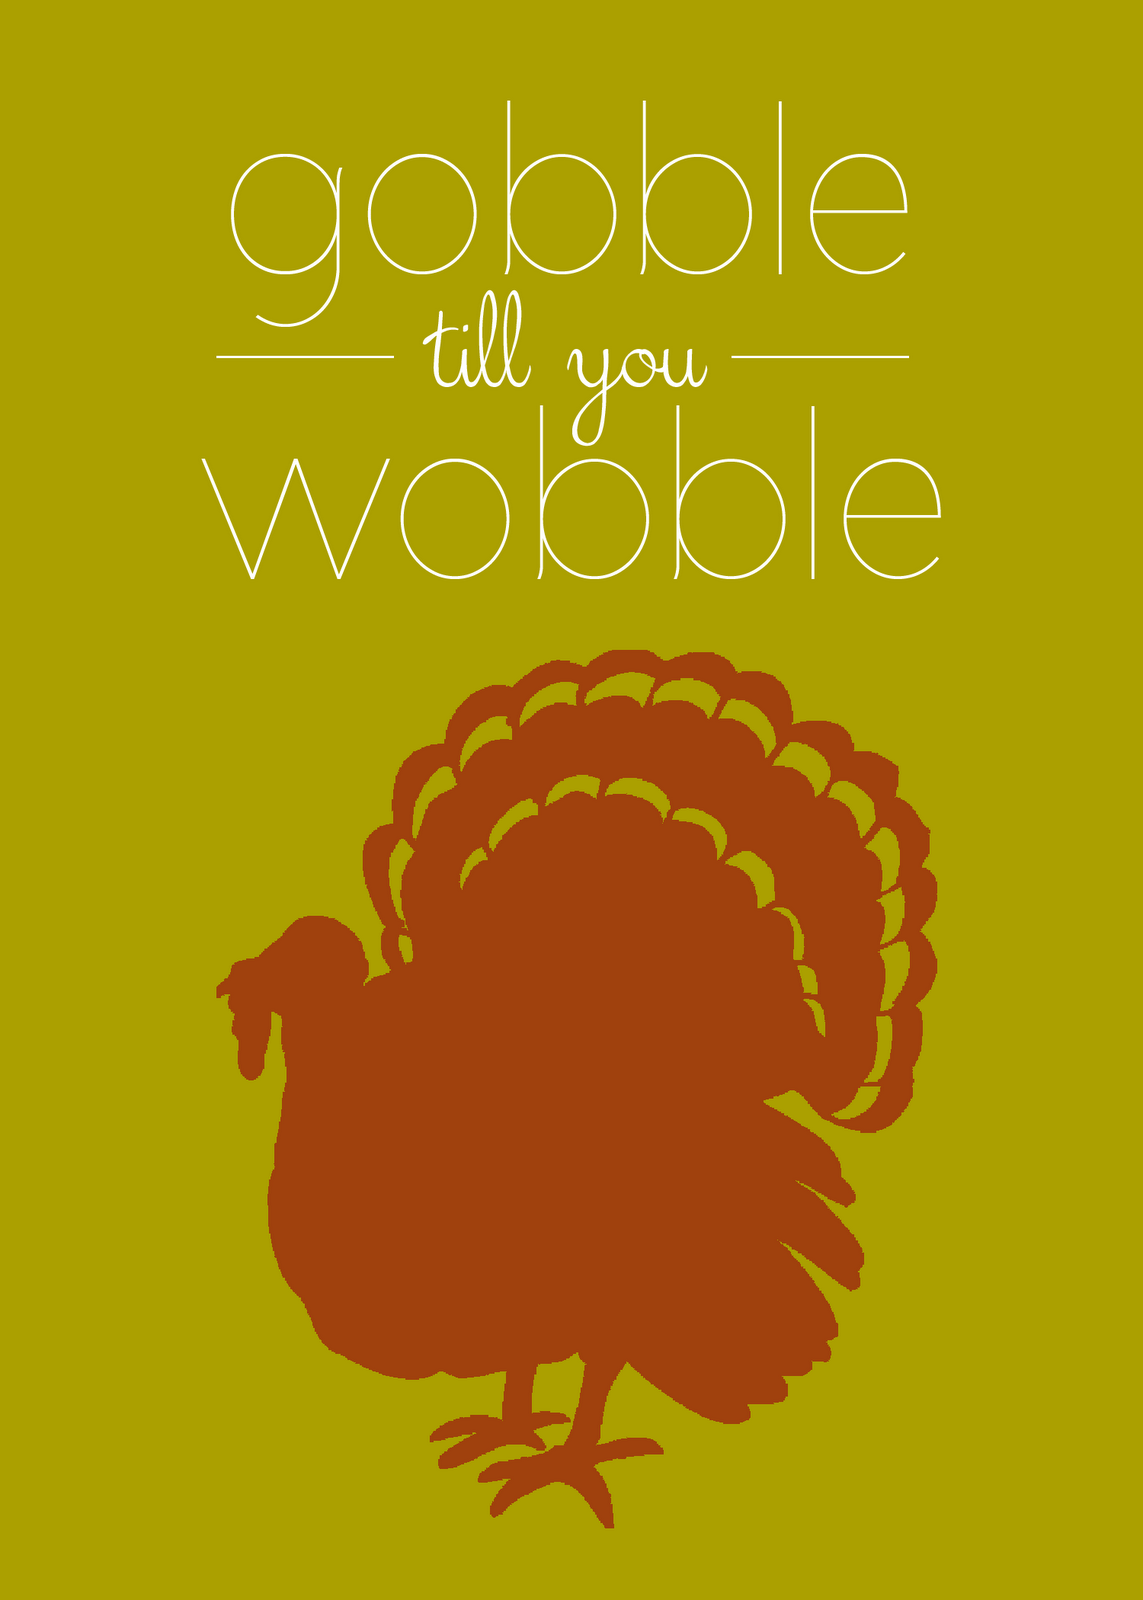 Gobble till you wobble - Quotable Monday | HOLI DAY- THANKSGIVING ...